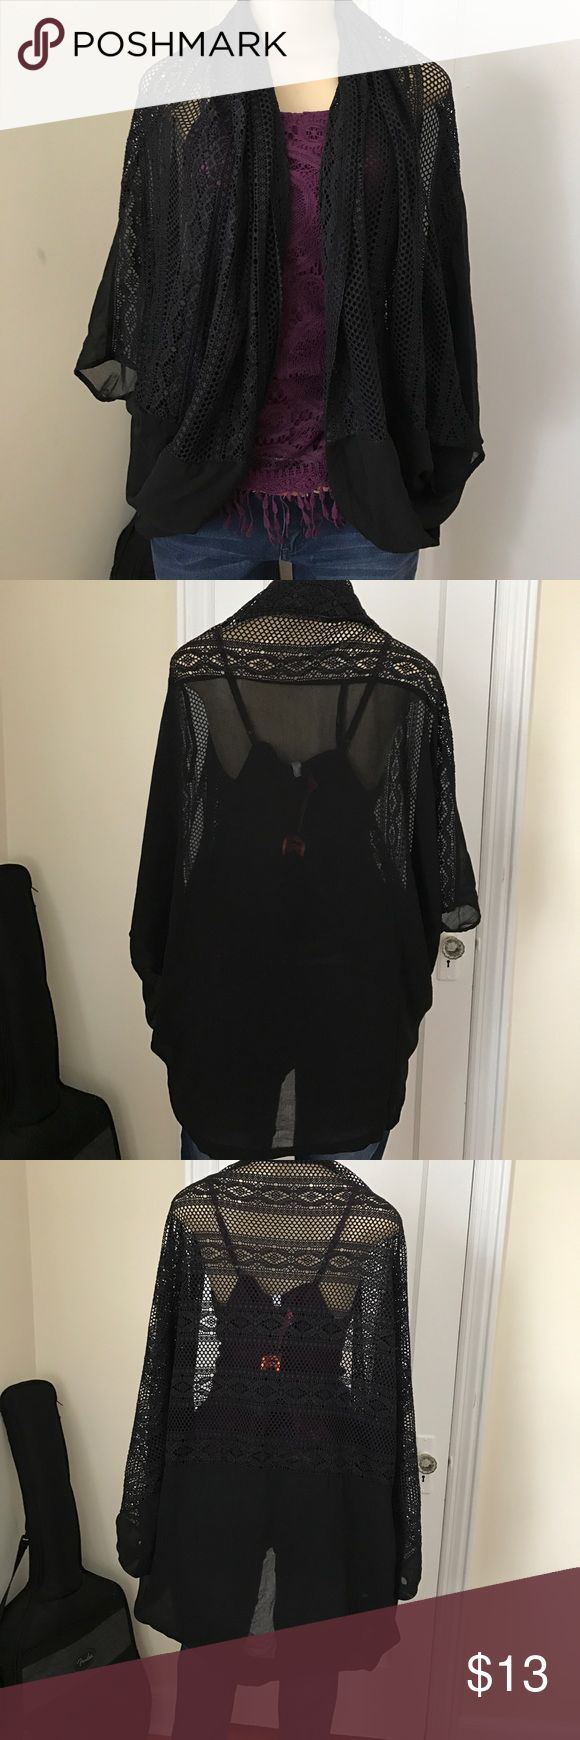 Black cover up Has arm holes so it doesn't slip off! Perfect for a night out / the beach/ a day out with friends Other